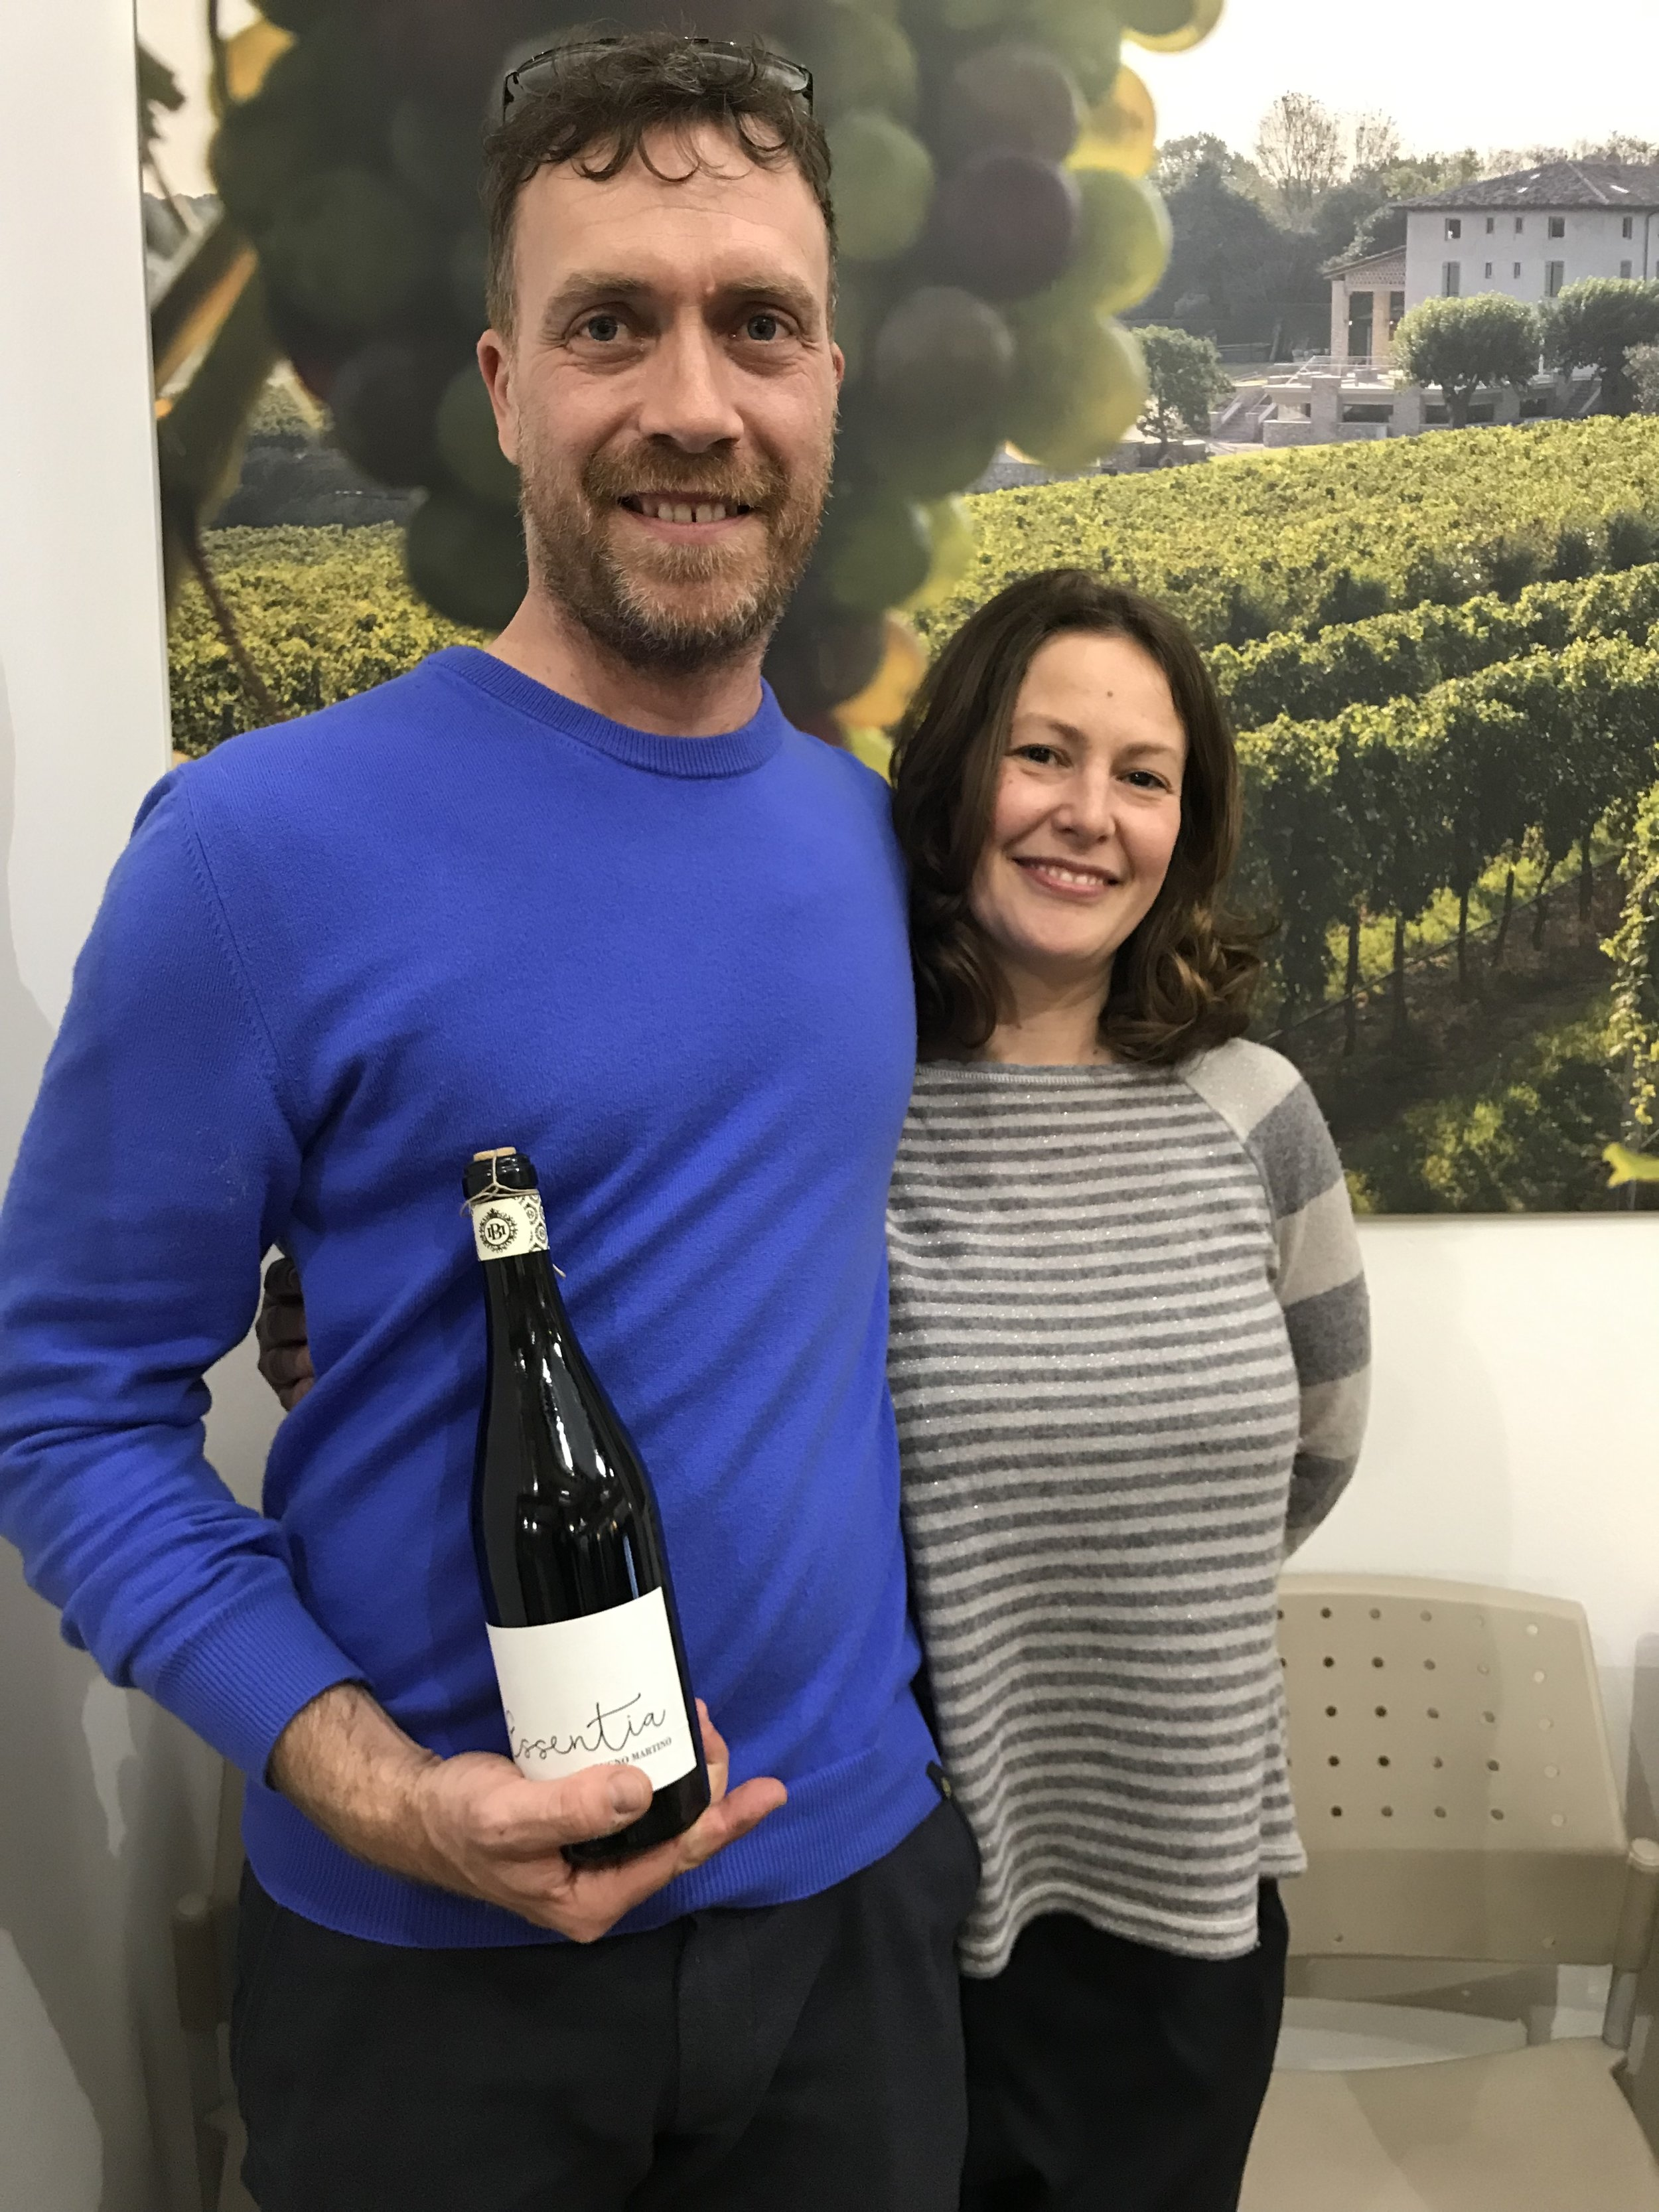 Giuseppe and Raffaella of Bugno Martino make good use of their 30 yr old Lambrusco vineyard to bring us delicious, organic, 'kick-back' Lambruscos.